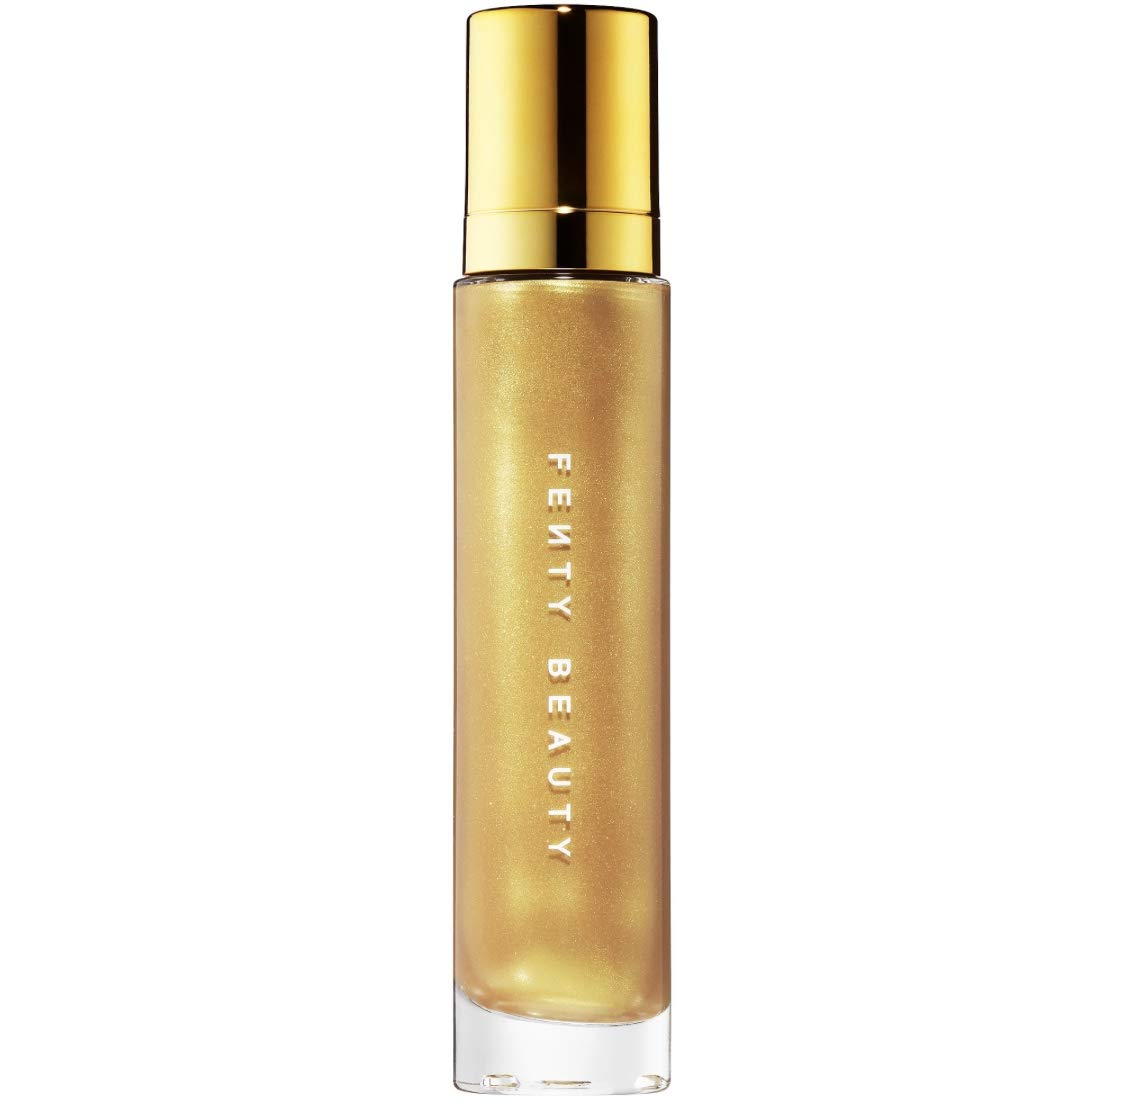 Fenty Beuty By Rihanna Body Lava Body Luminizer 3 Fl. Oz! Body Shimmer, High Shine, Silky & Glorious Dewy! Choose From Brown Sugar, Who Needs Clothes or Trophy Wife! (Trophy Wife)